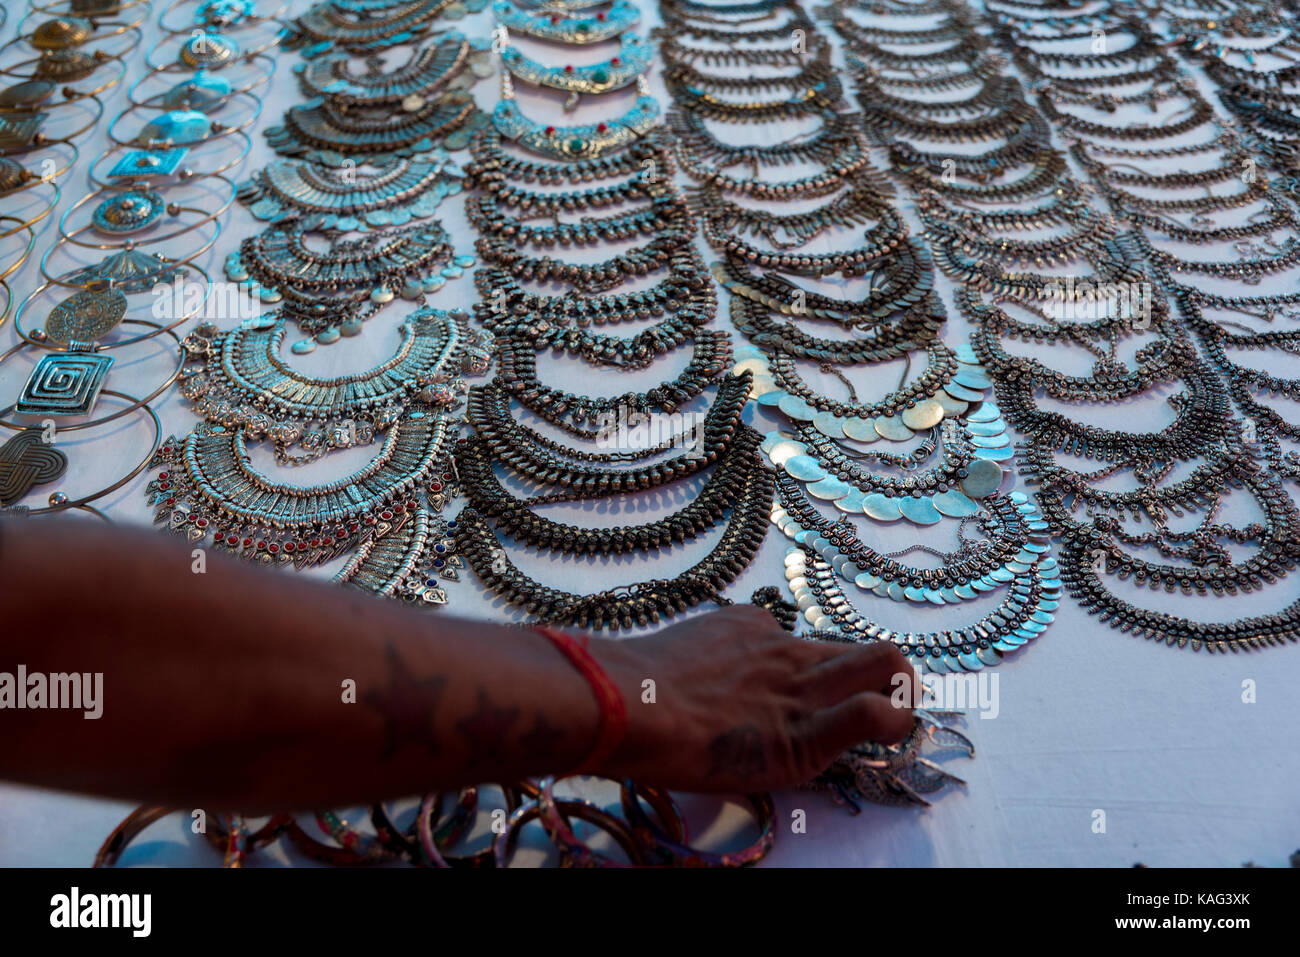 Souvenir jewelry india indian stock photos souvenir for Local handmade jewelry near me